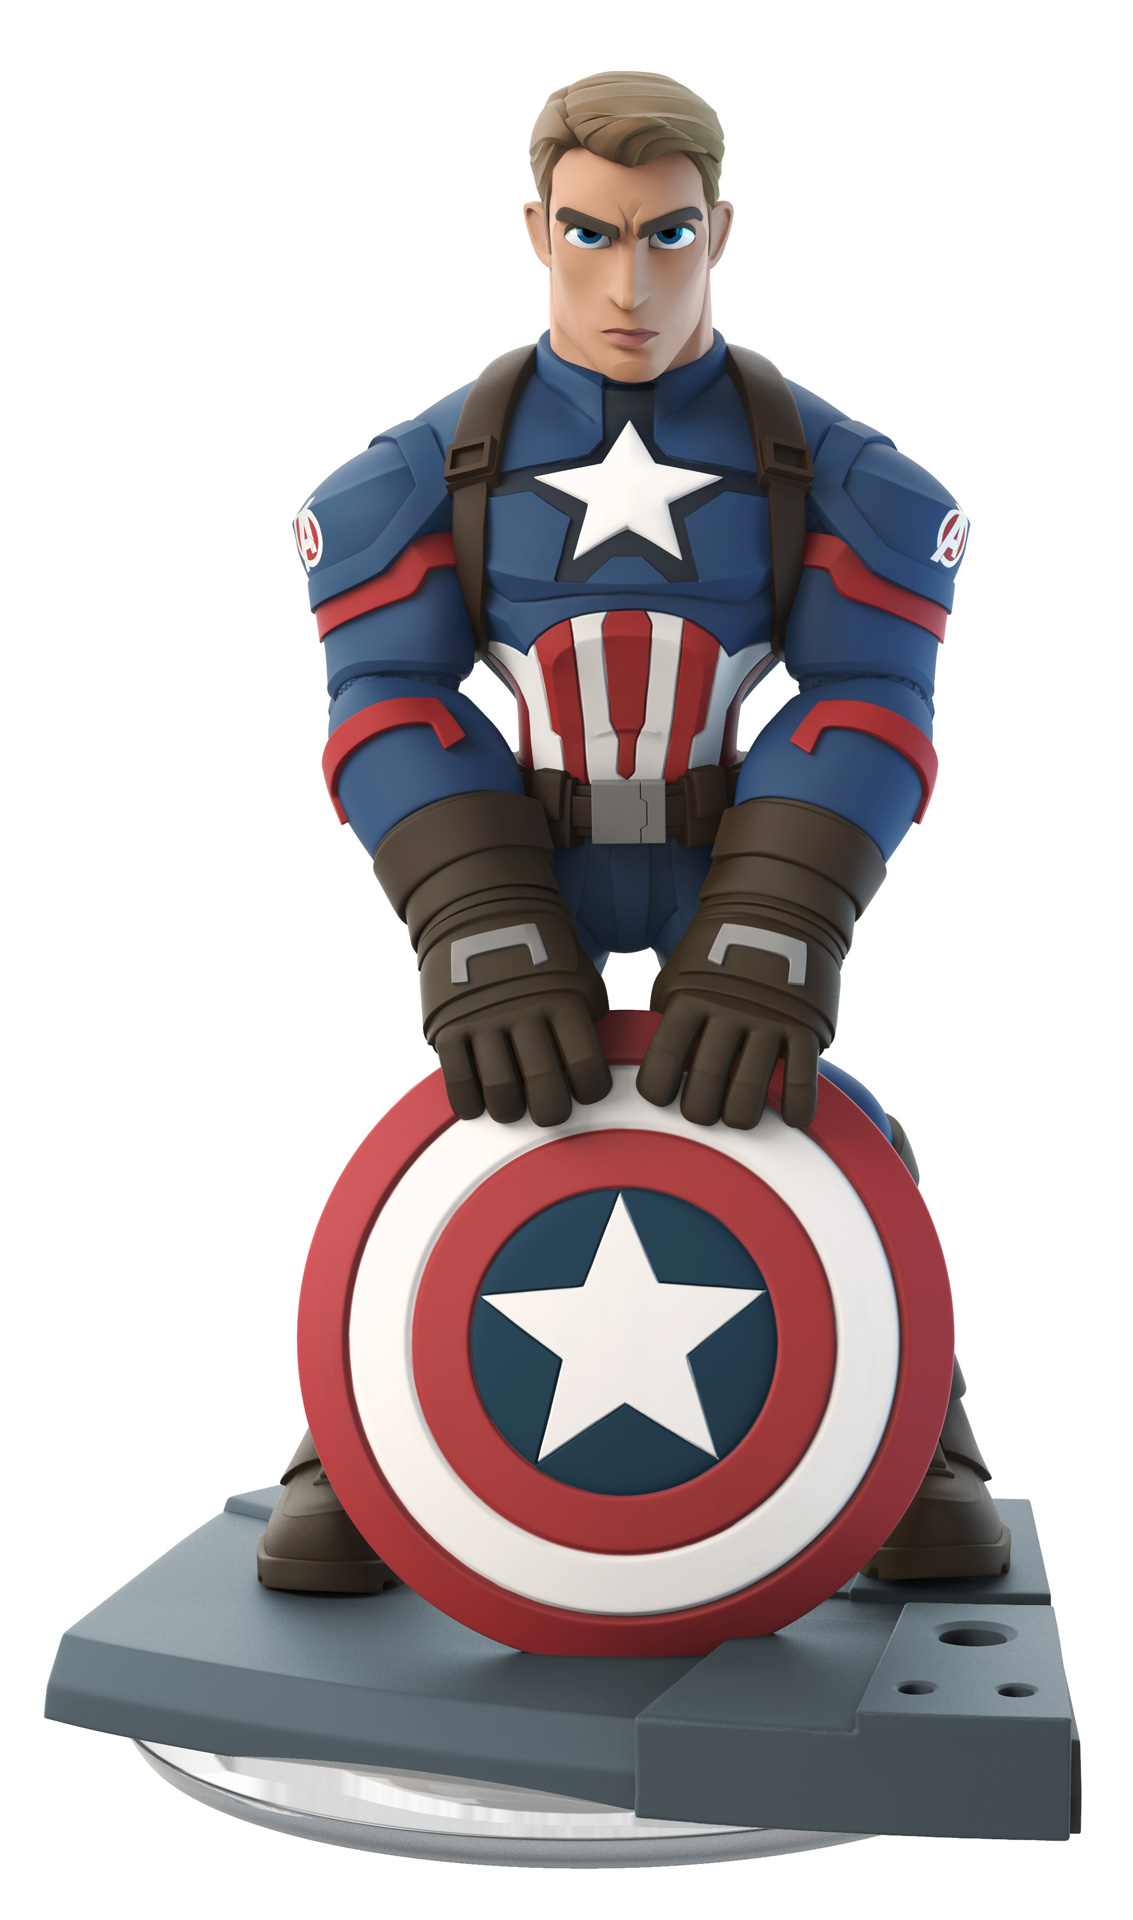 captain america joins disney infinity 3 0 with chris evans likeness thehdroom. Black Bedroom Furniture Sets. Home Design Ideas